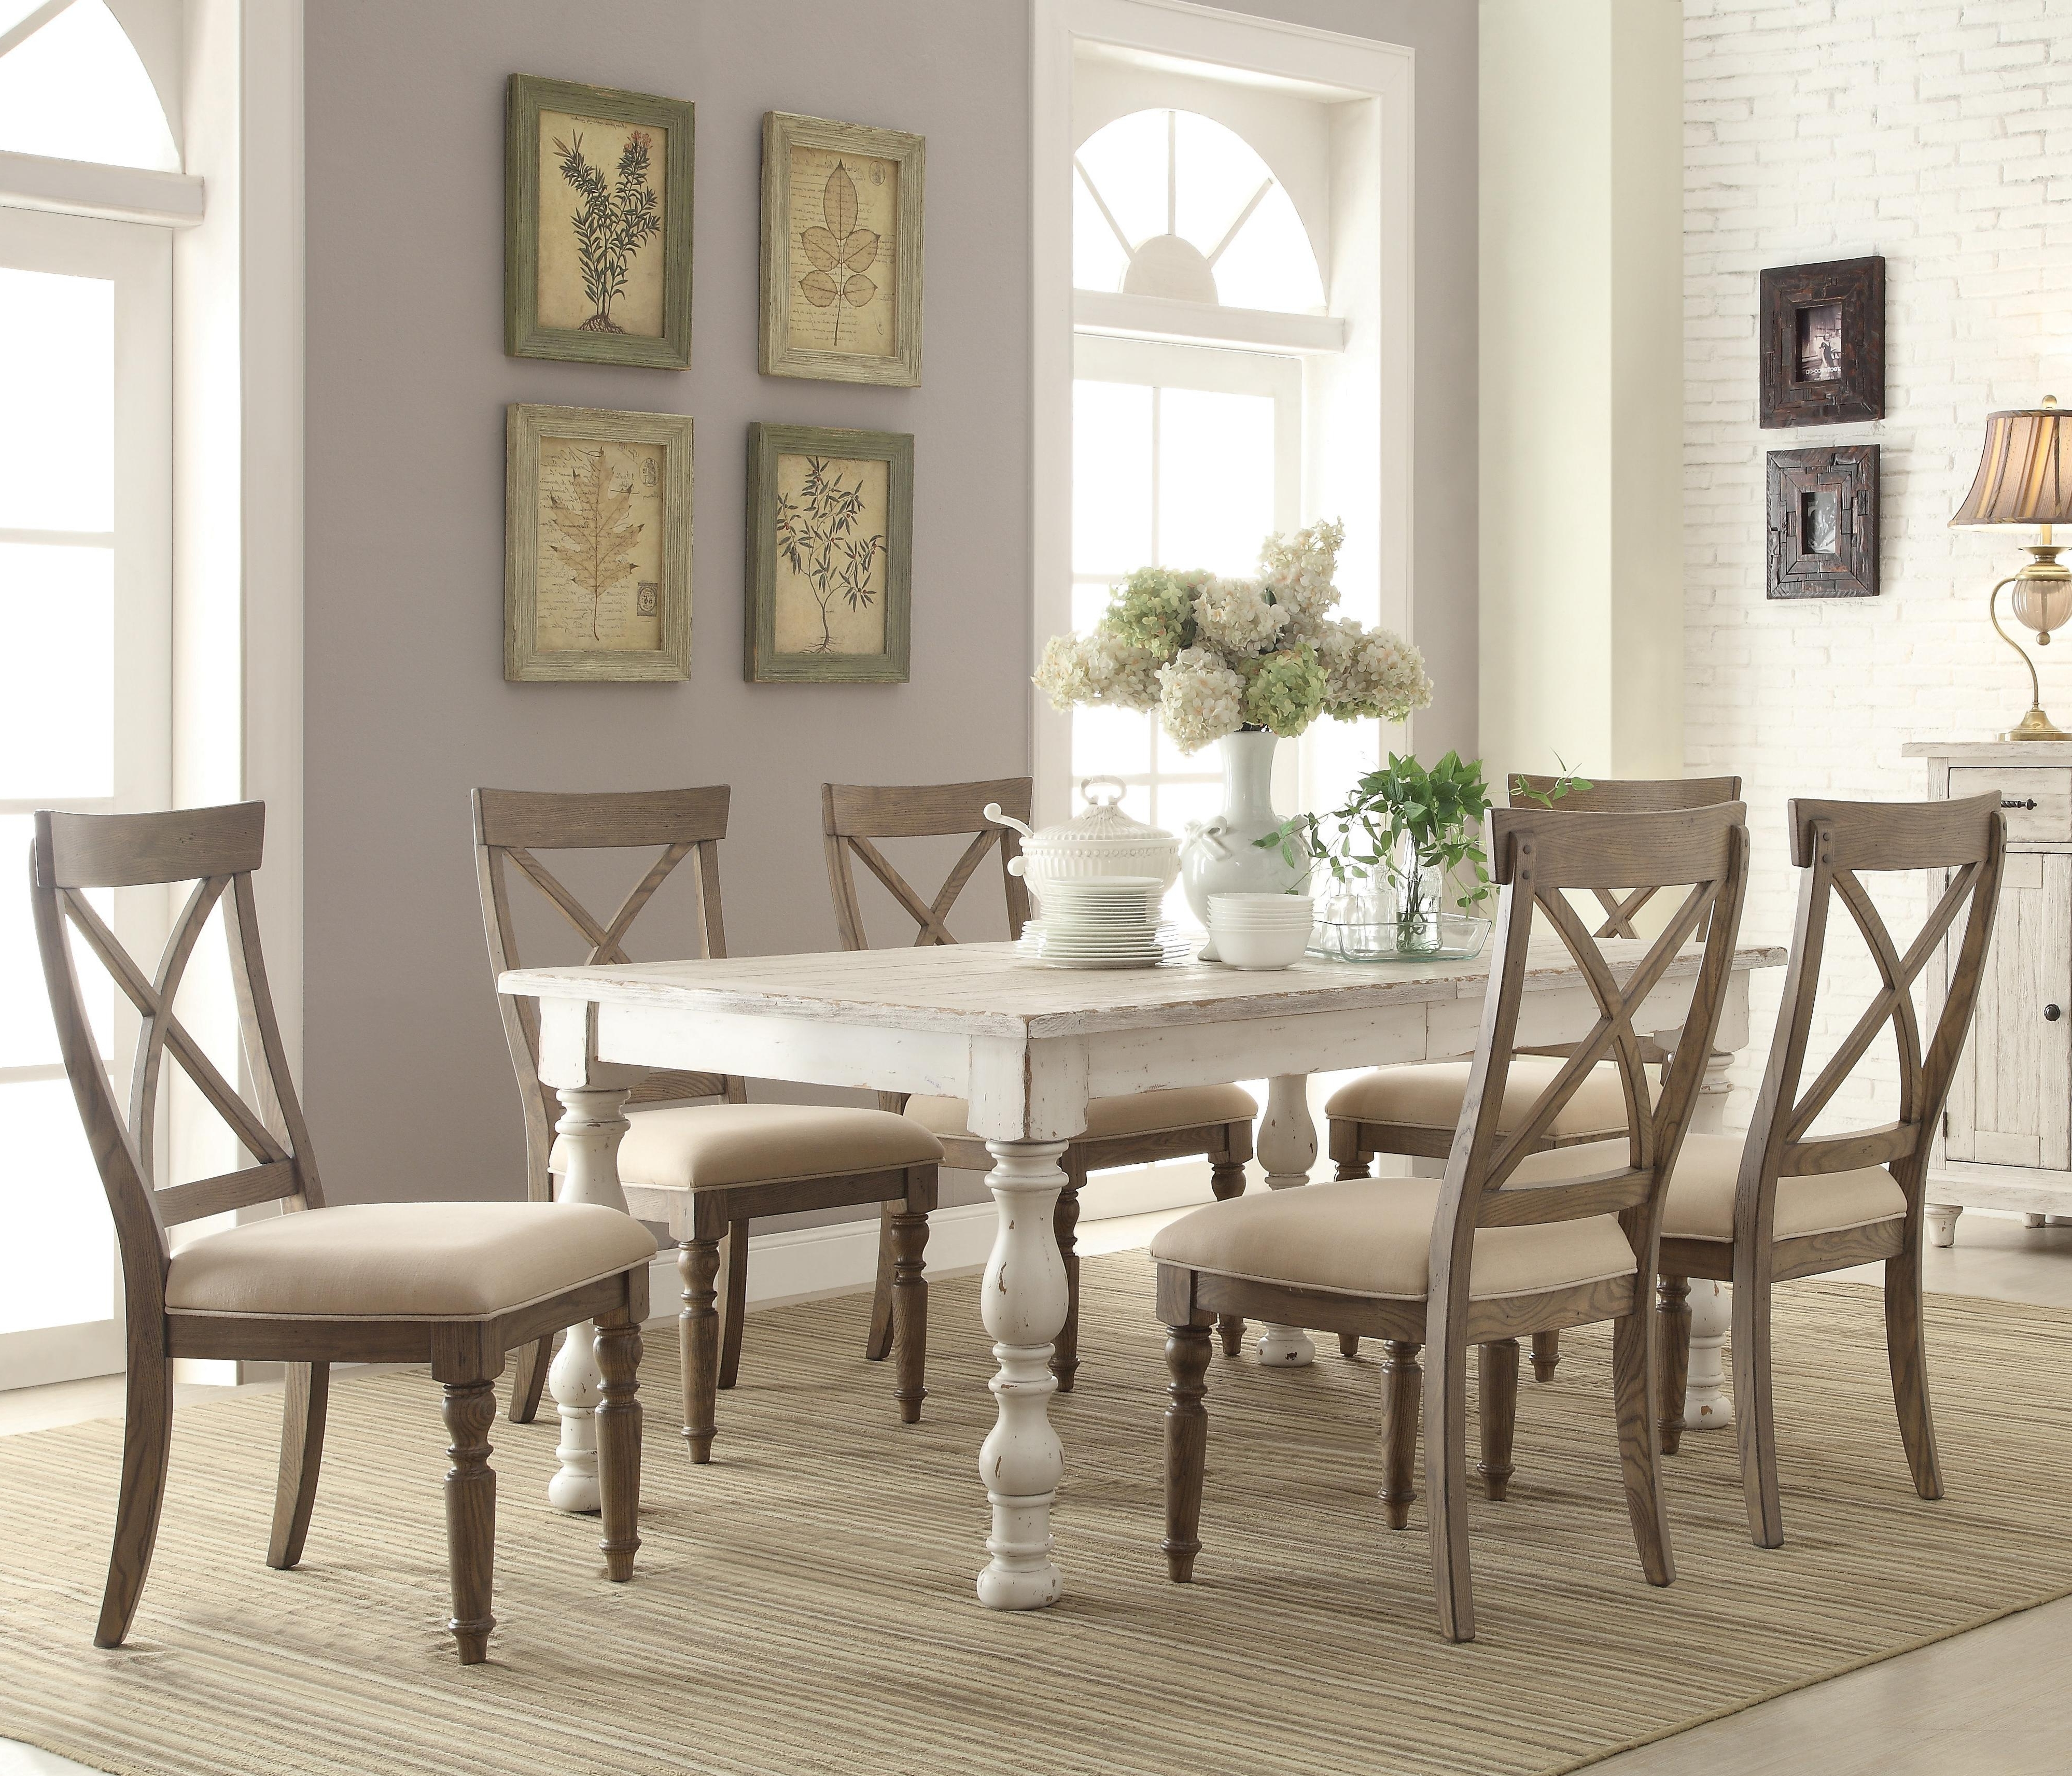 Hudson's For Latest Dining Sets (Gallery 10 of 25)